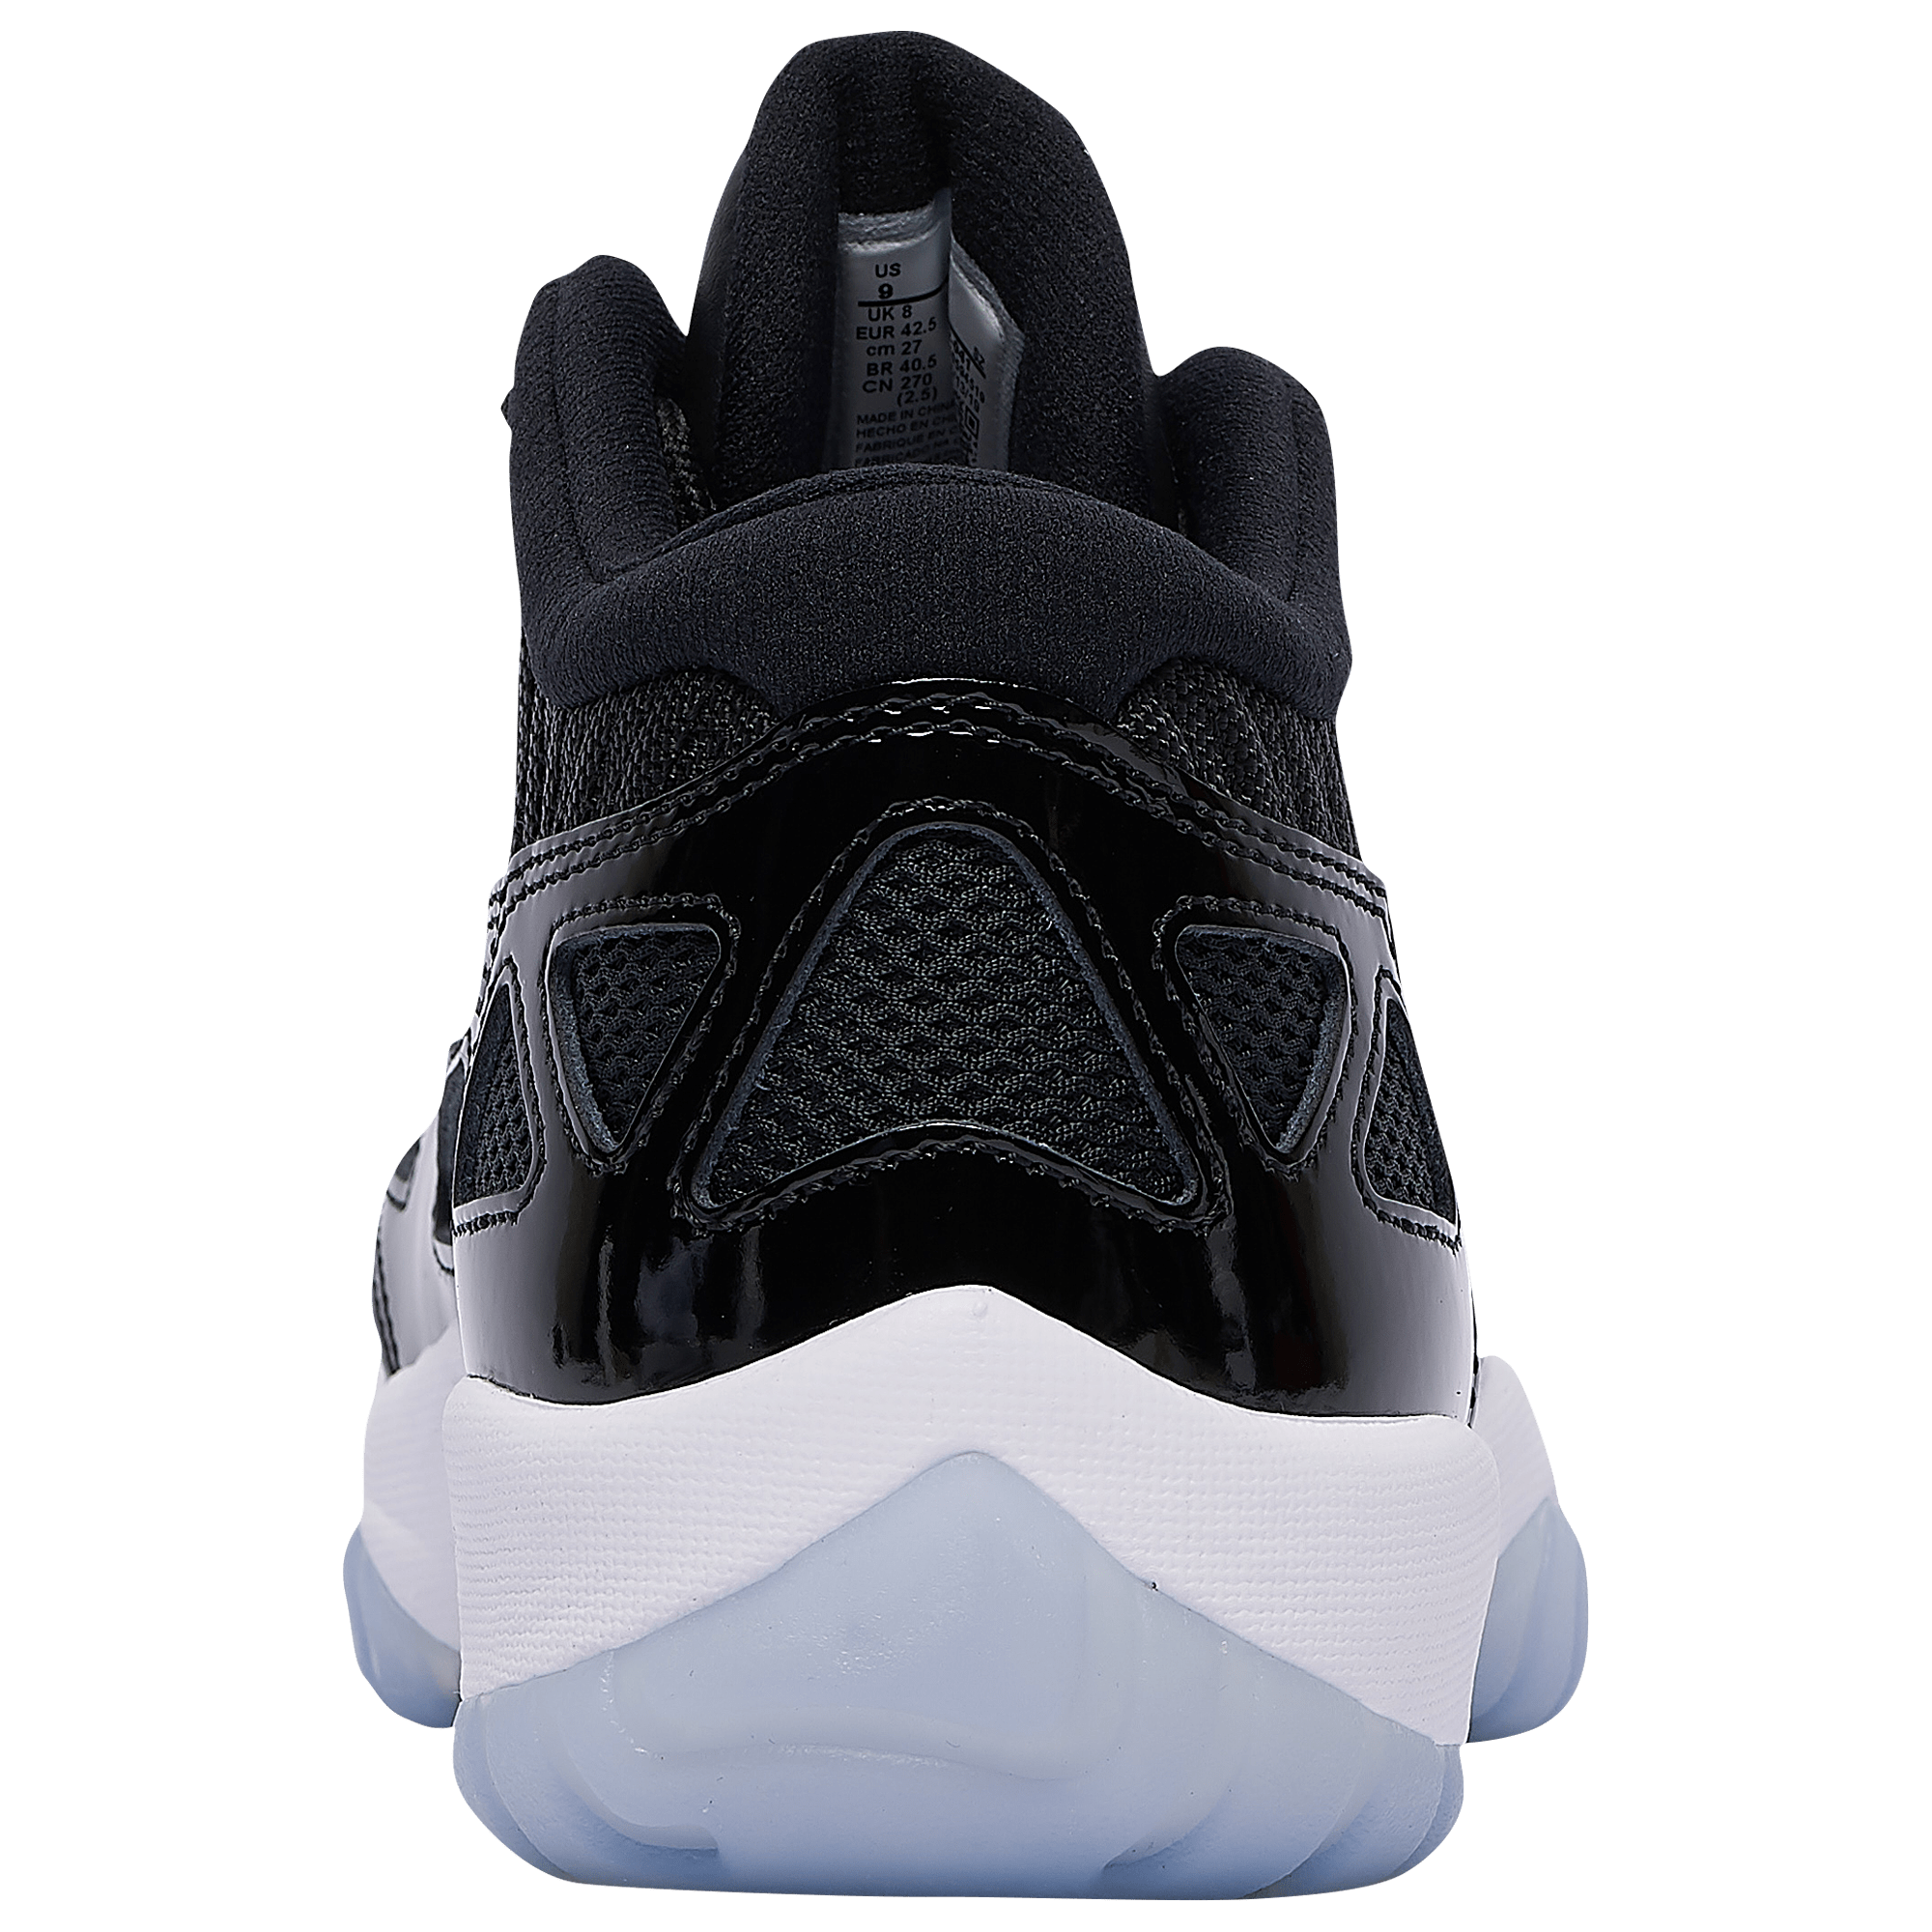 lowest price 50% price purchase cheap Air Jordan 11 Low IE 'Space Jam' Black/Concord 919712-041 ...